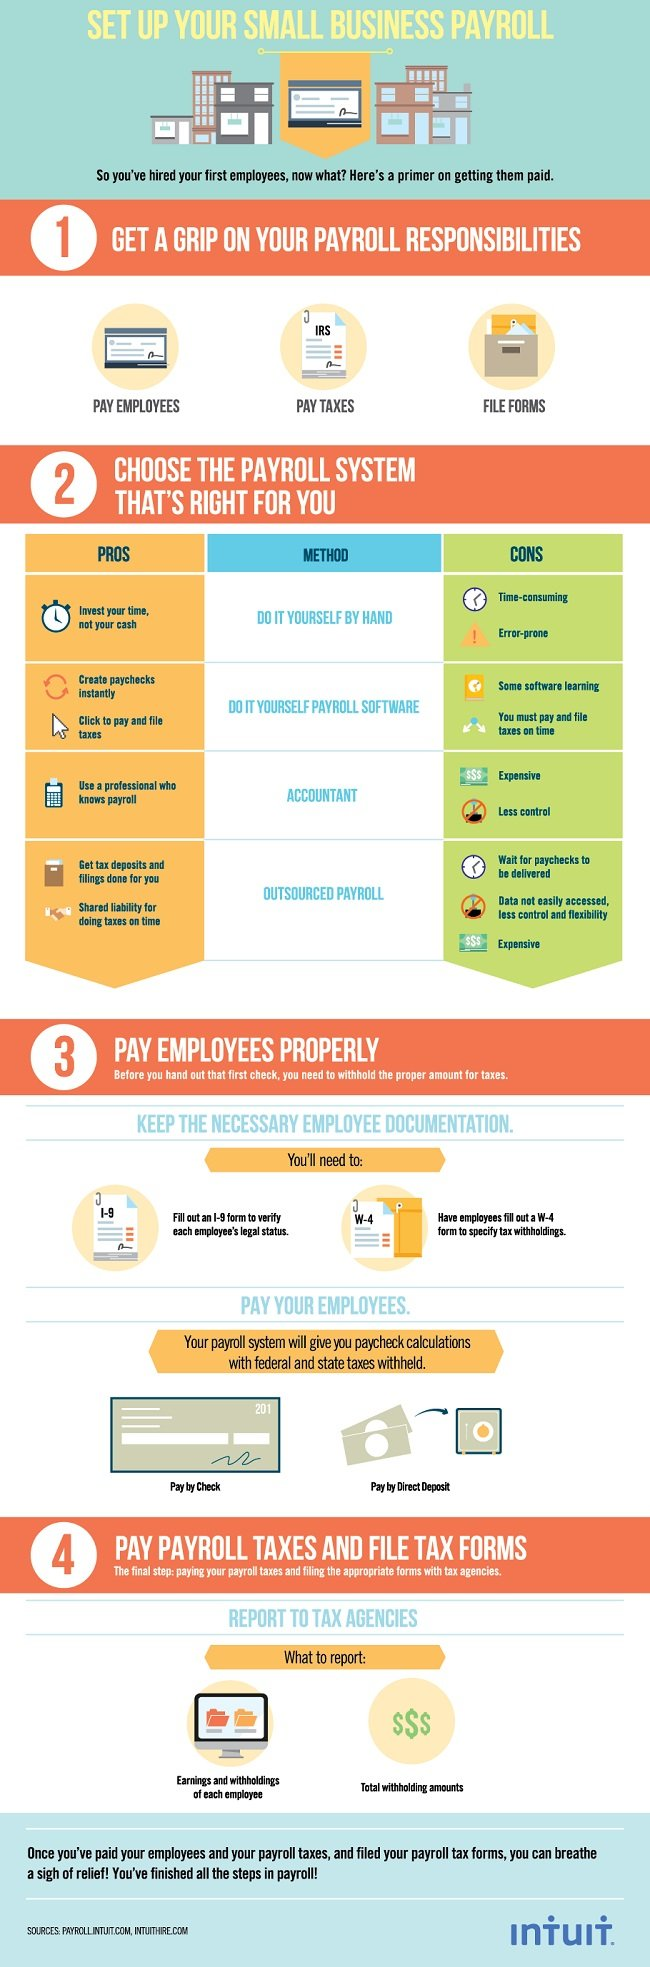 4-steps-to-a-successful-small-business-payroll-process